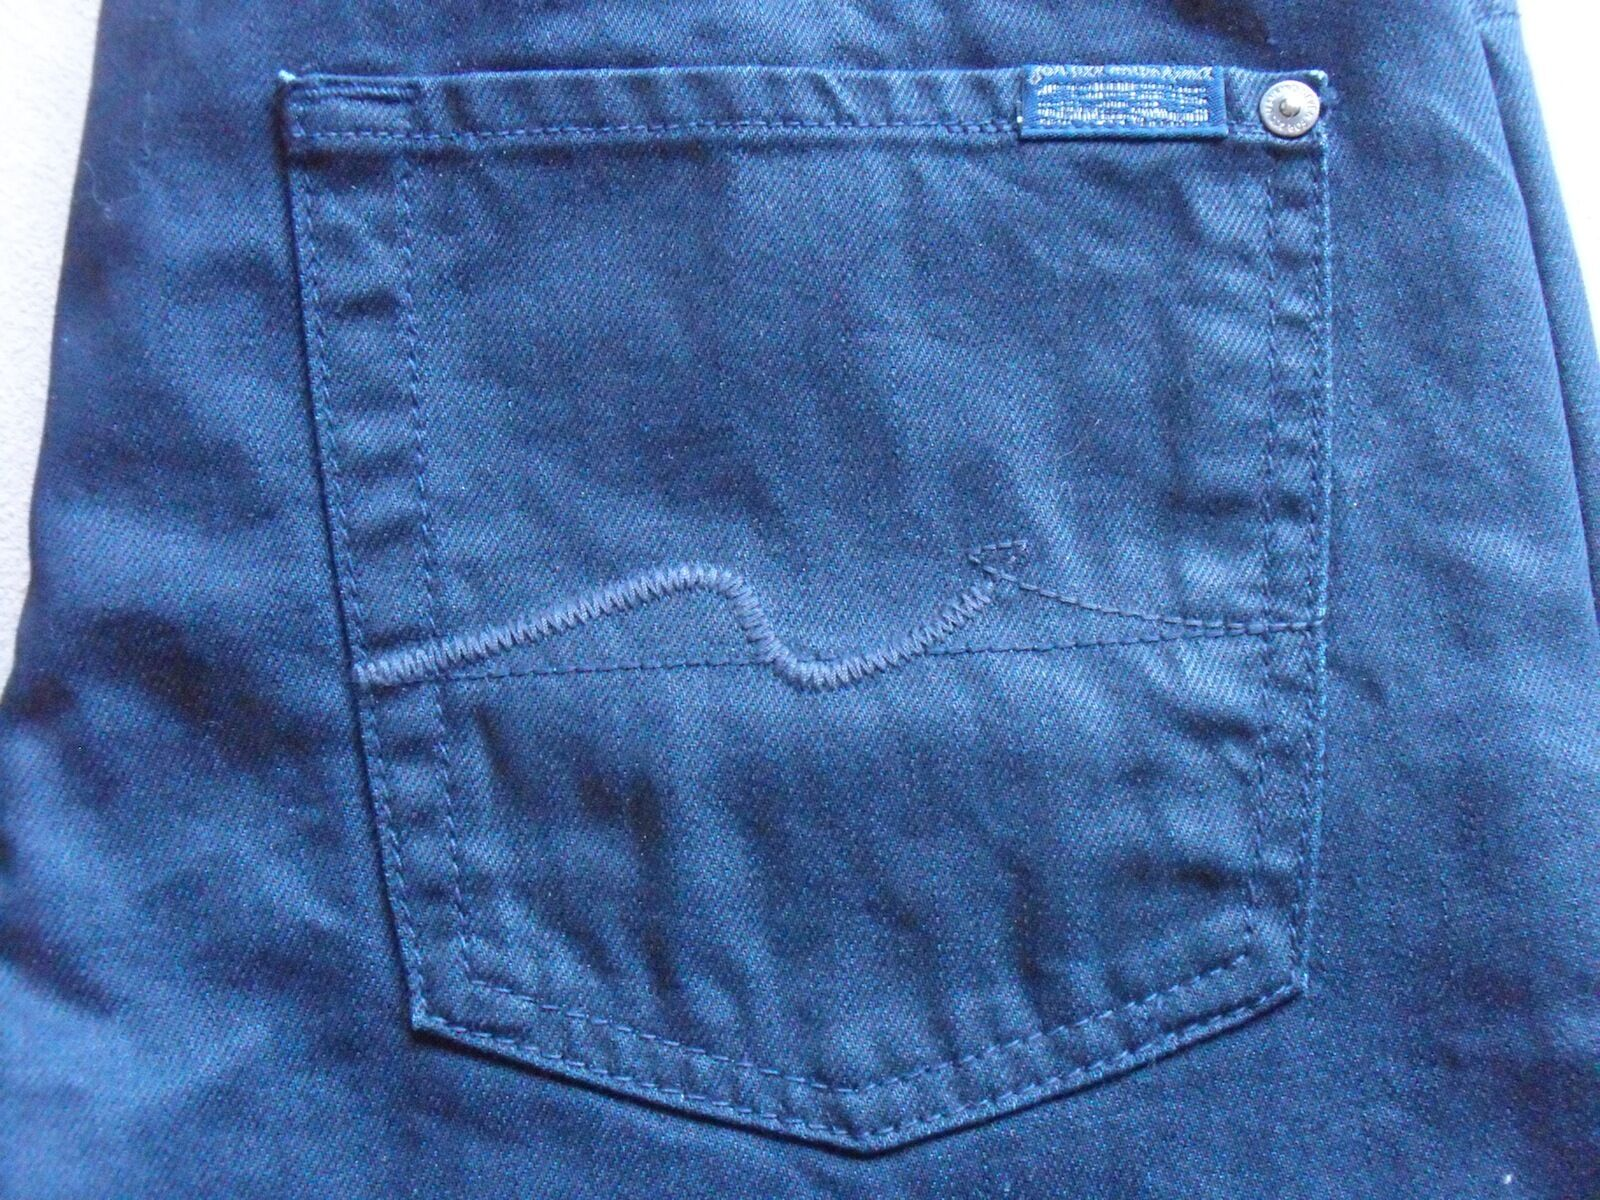 SEVEN 7 FOR ALL MANKIND MENS STANDARD COATED DARK blueE SLIM JEANS SIZE 30 NEW